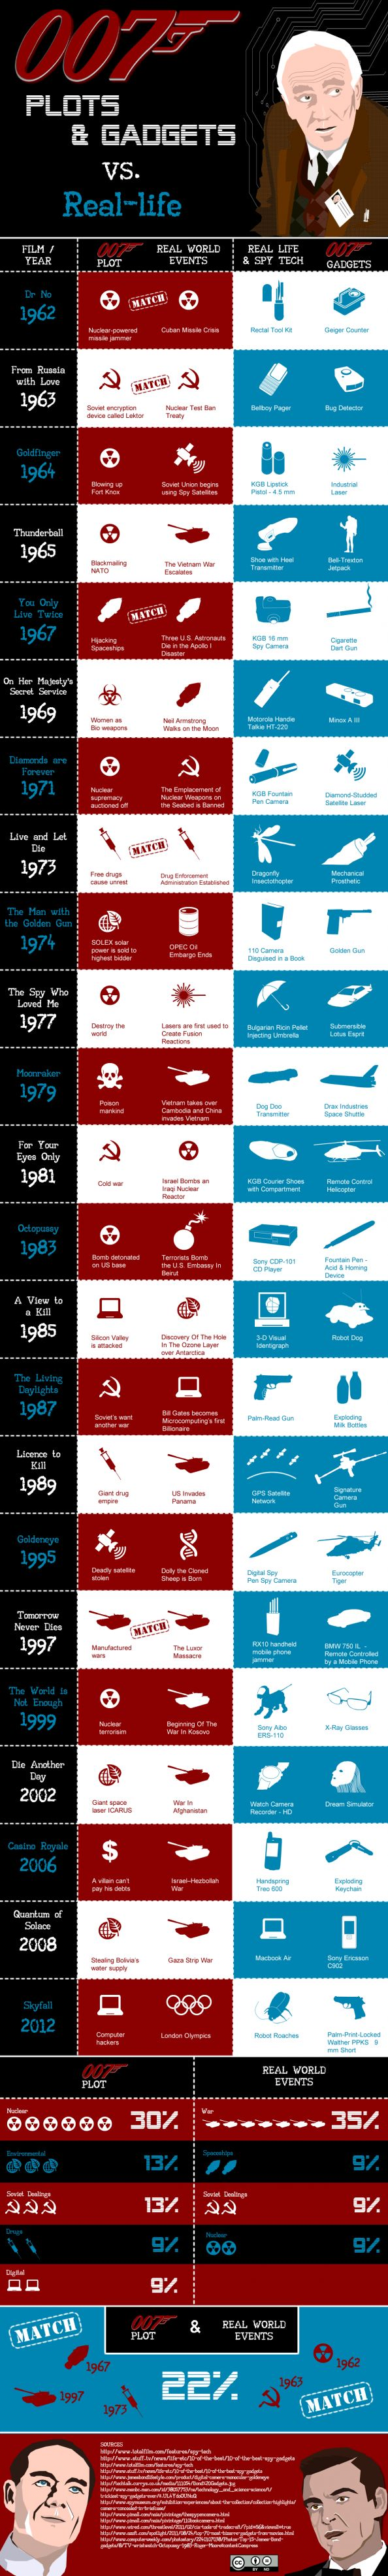 50 years of 007 Plots & Gadgets vs Real Life Infographic